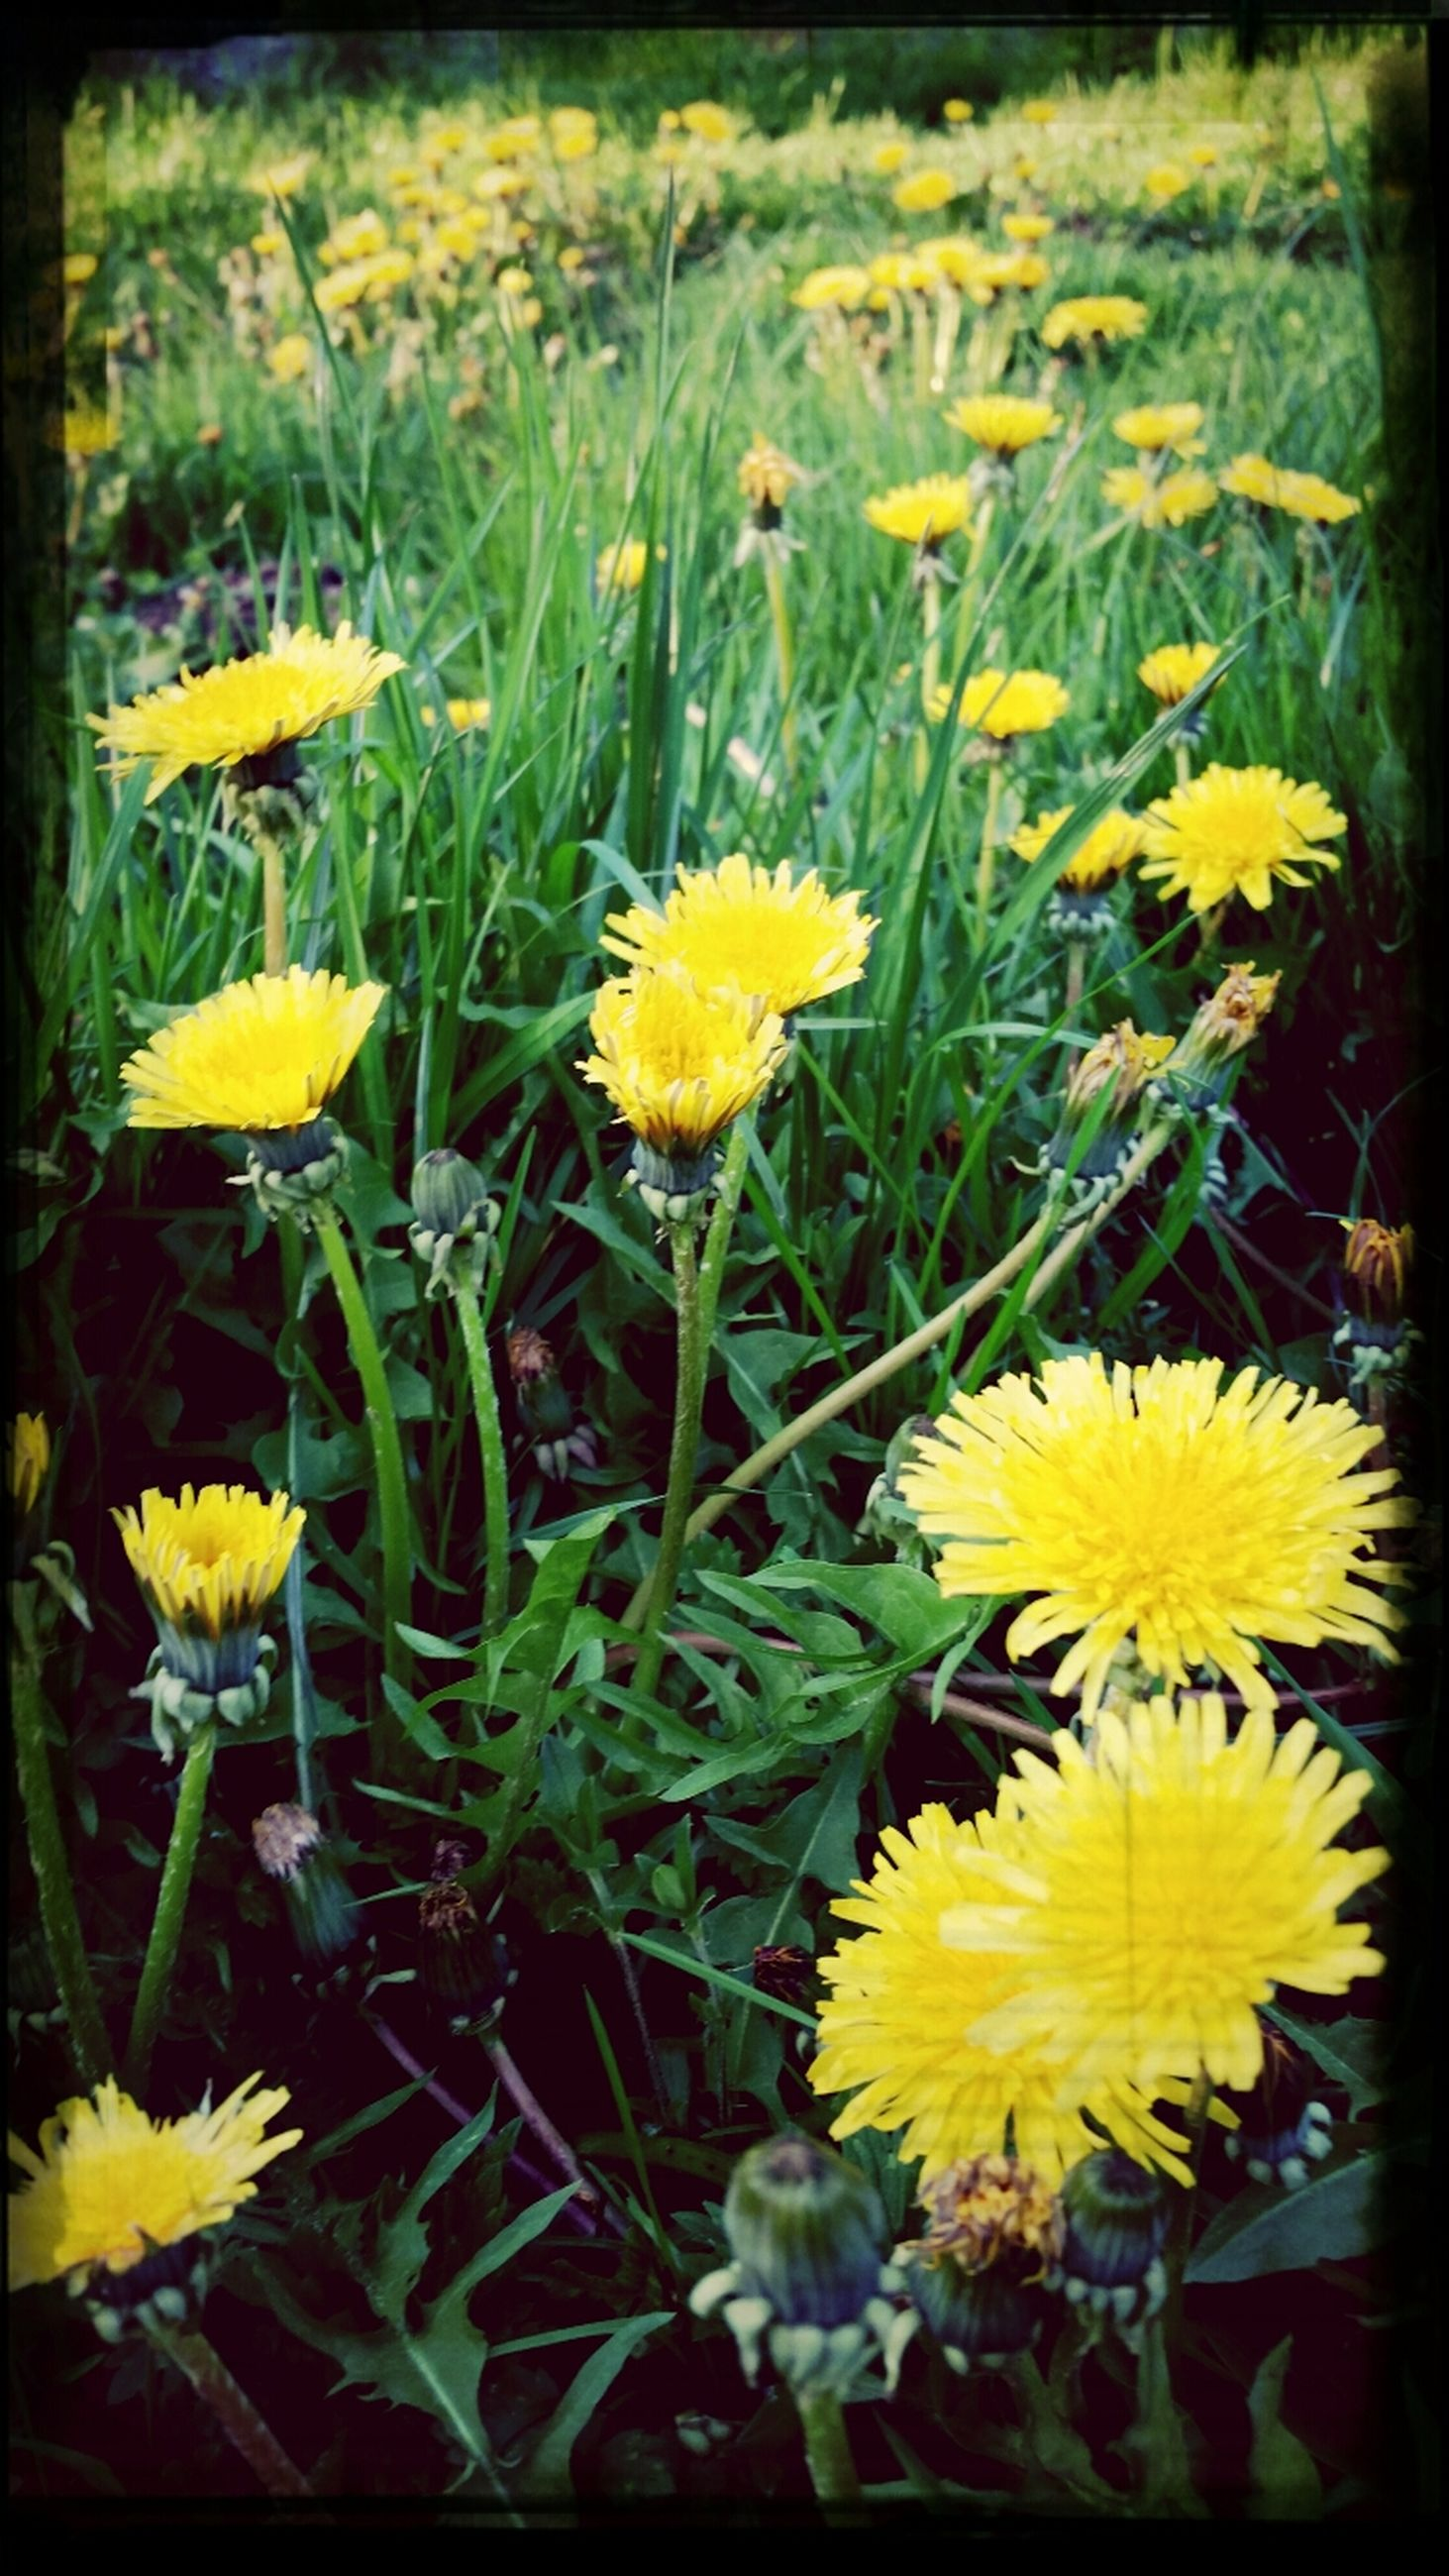 flower, freshness, yellow, fragility, petal, growth, flower head, beauty in nature, blooming, nature, plant, field, in bloom, transfer print, leaf, close-up, blossom, daisy, pollen, high angle view